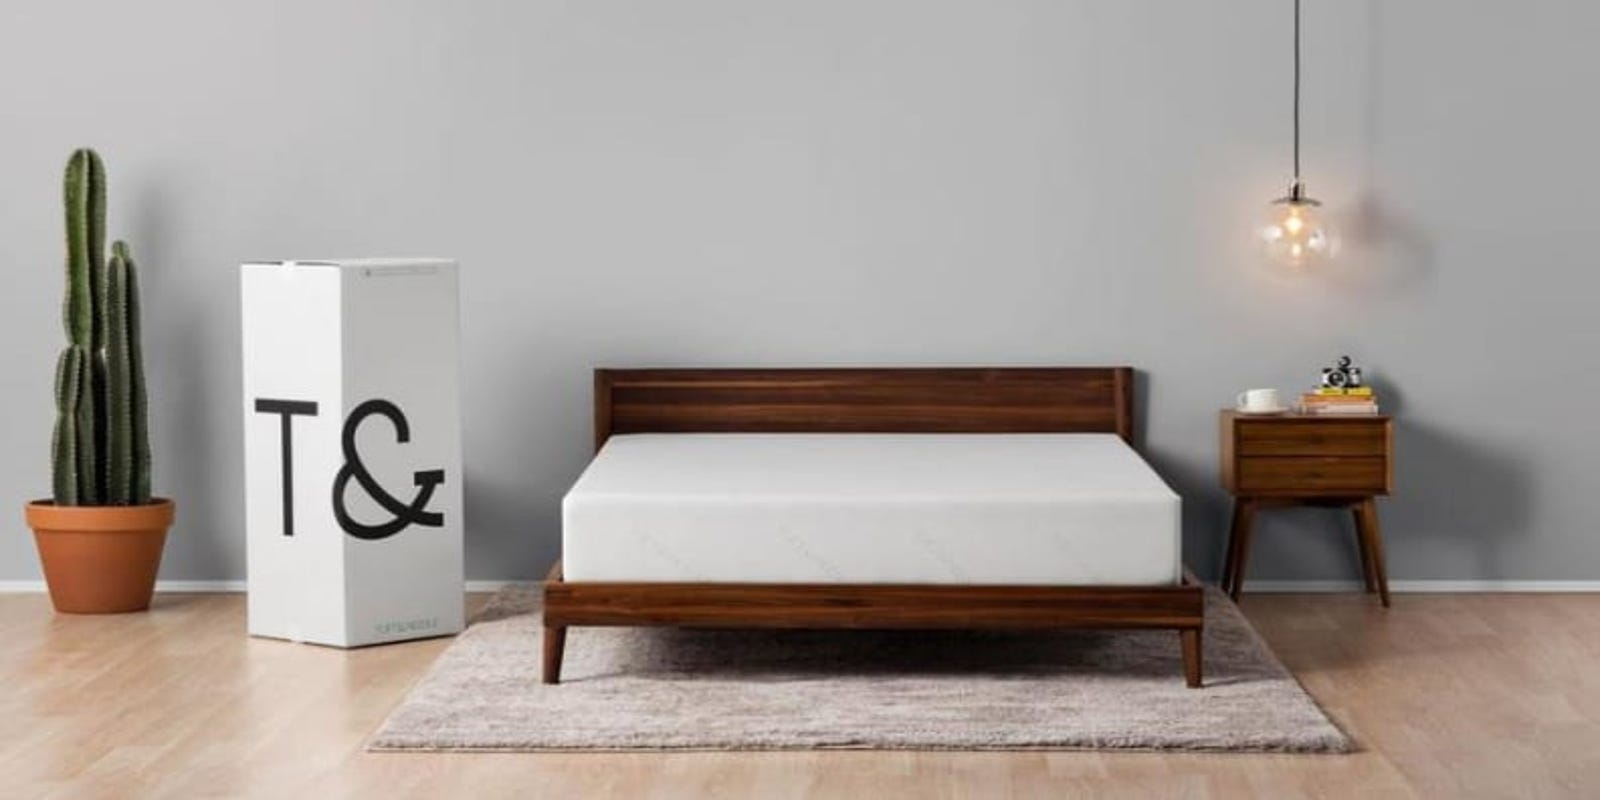 Get a major discount on the Tuft & Needle Original Mattress during Amazon Prime Day